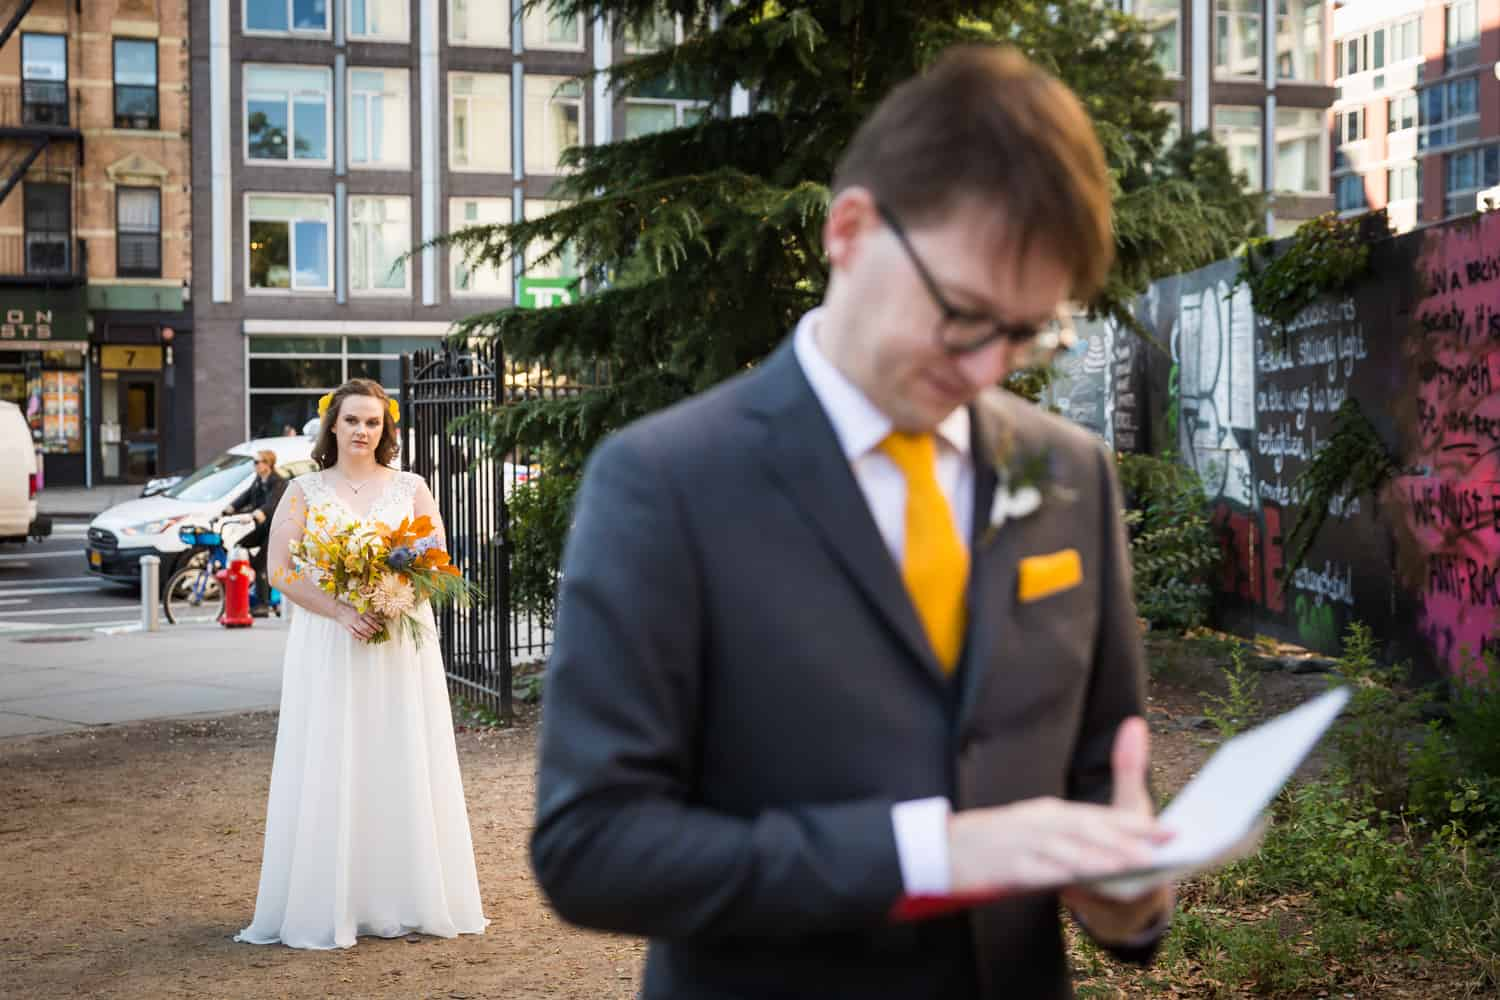 Groom reading letter with bride behind him